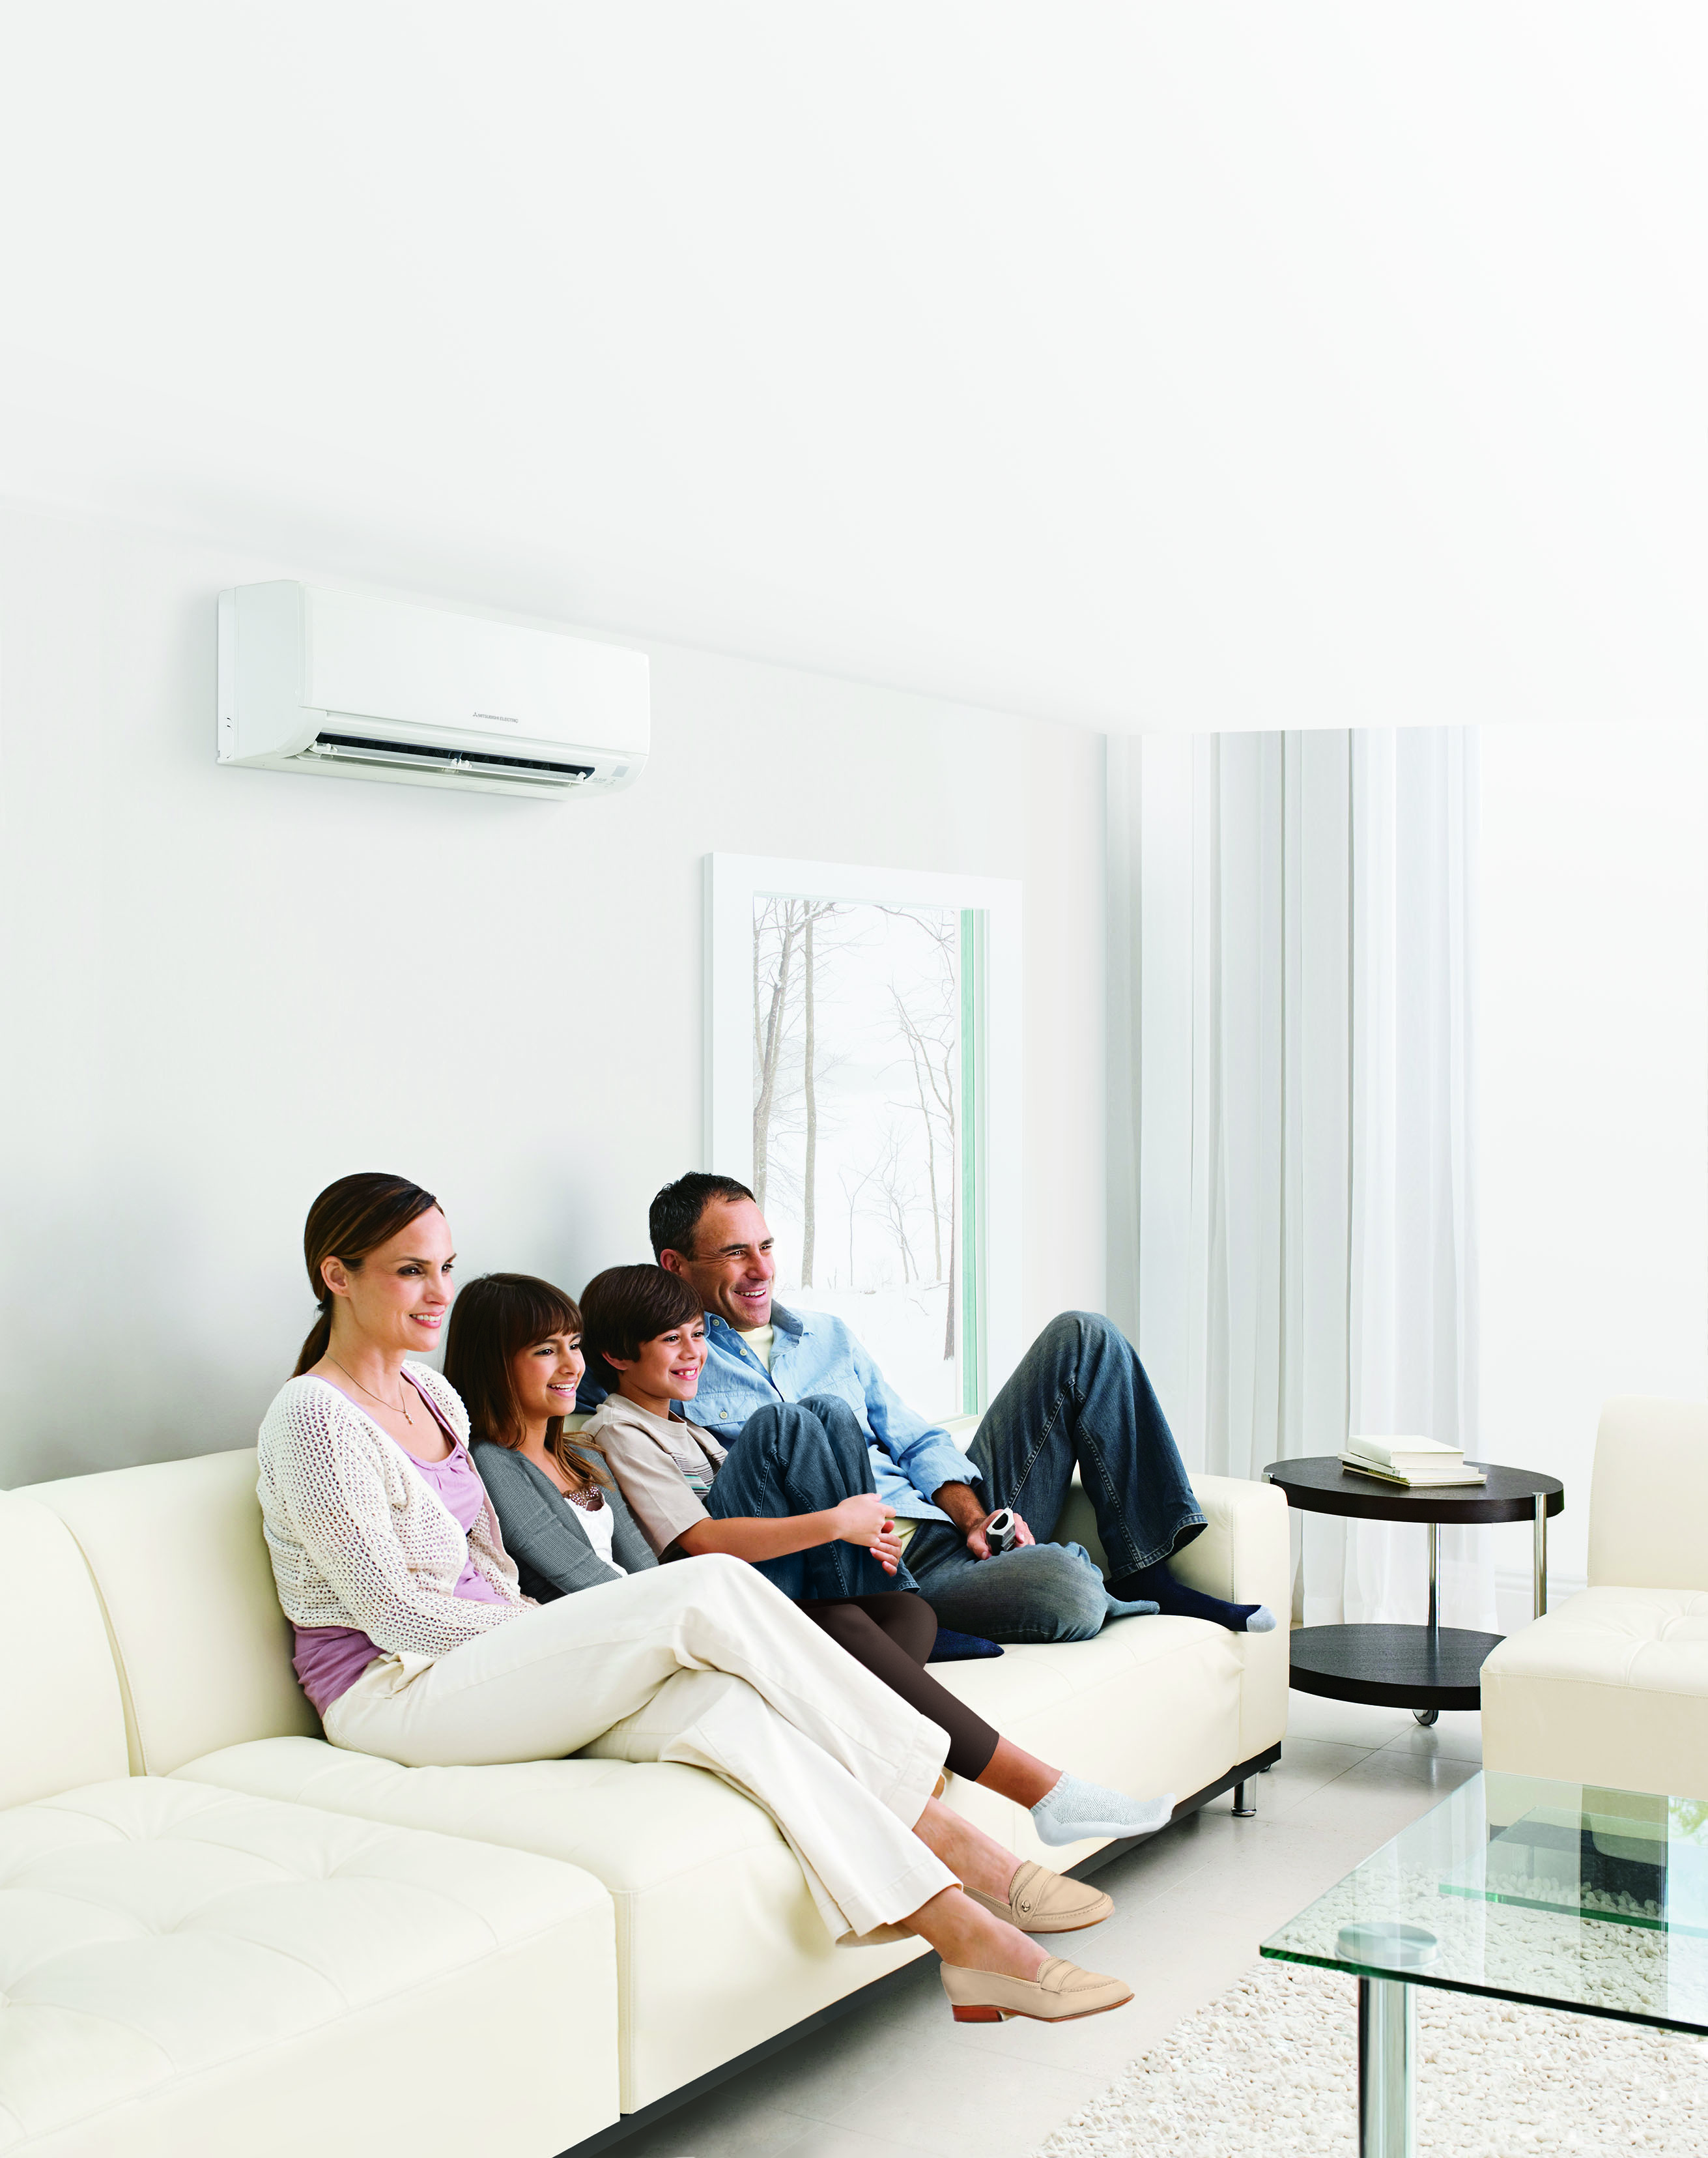 ductless-heating-and-cooling-system